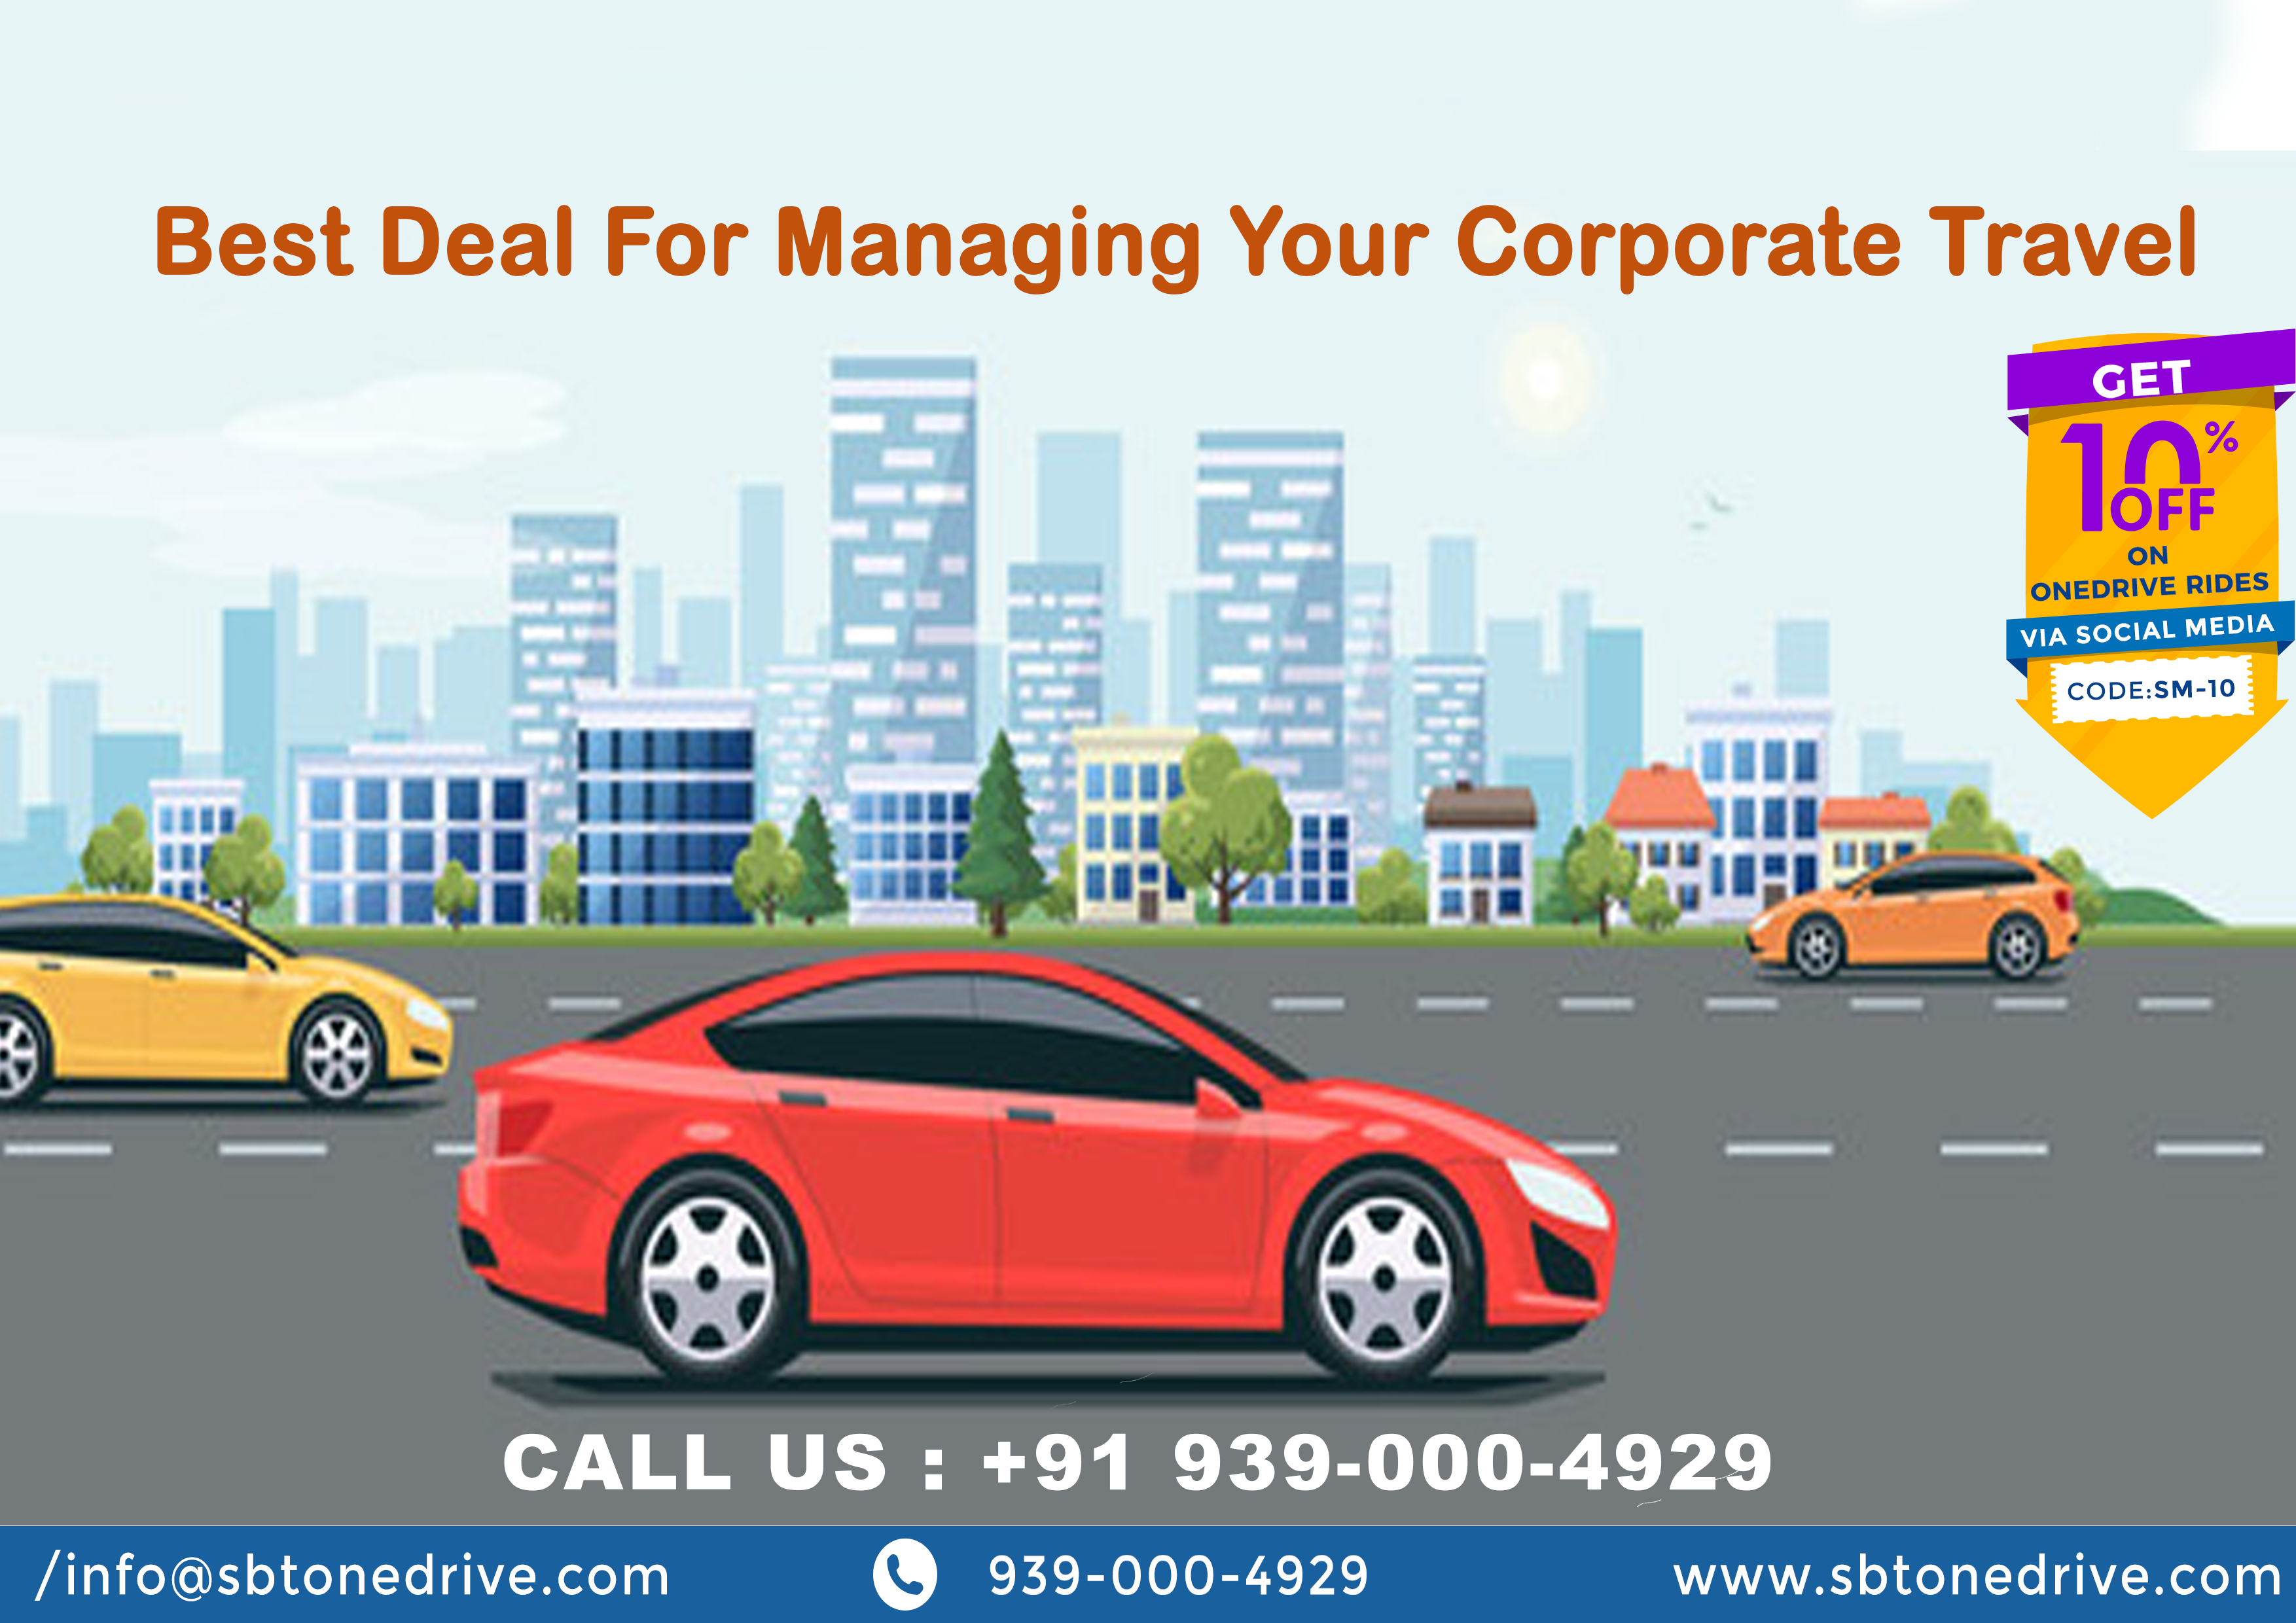 Sbt One Drive Is One Of The Best Car Rental In India For Corporate Meets Weddings Long Term Rentals Airport Transfer Much More In The Best Possib Car Rental